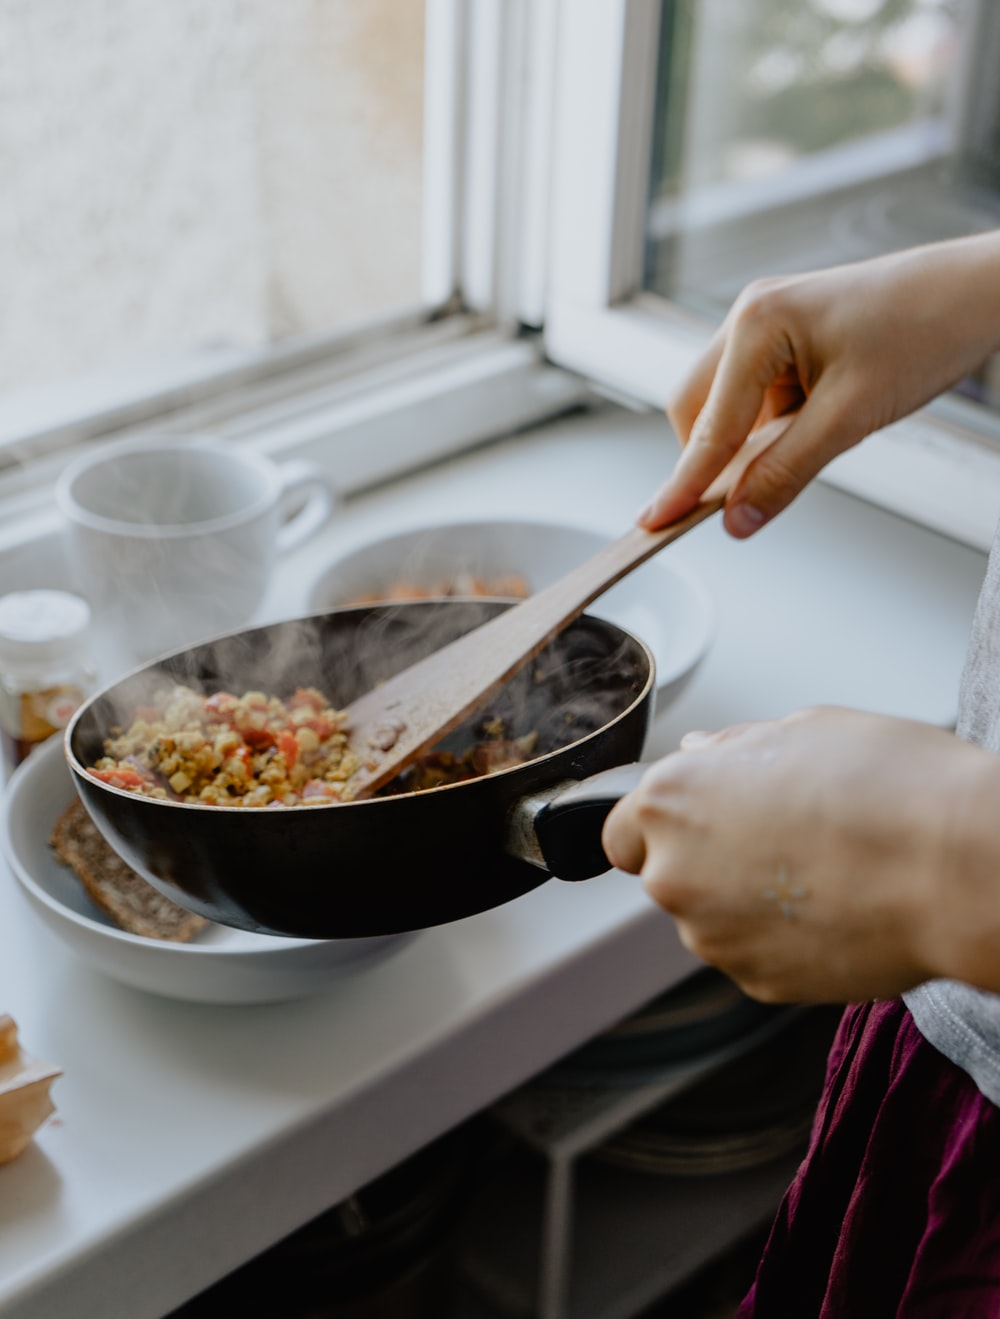 person holding black frying pan